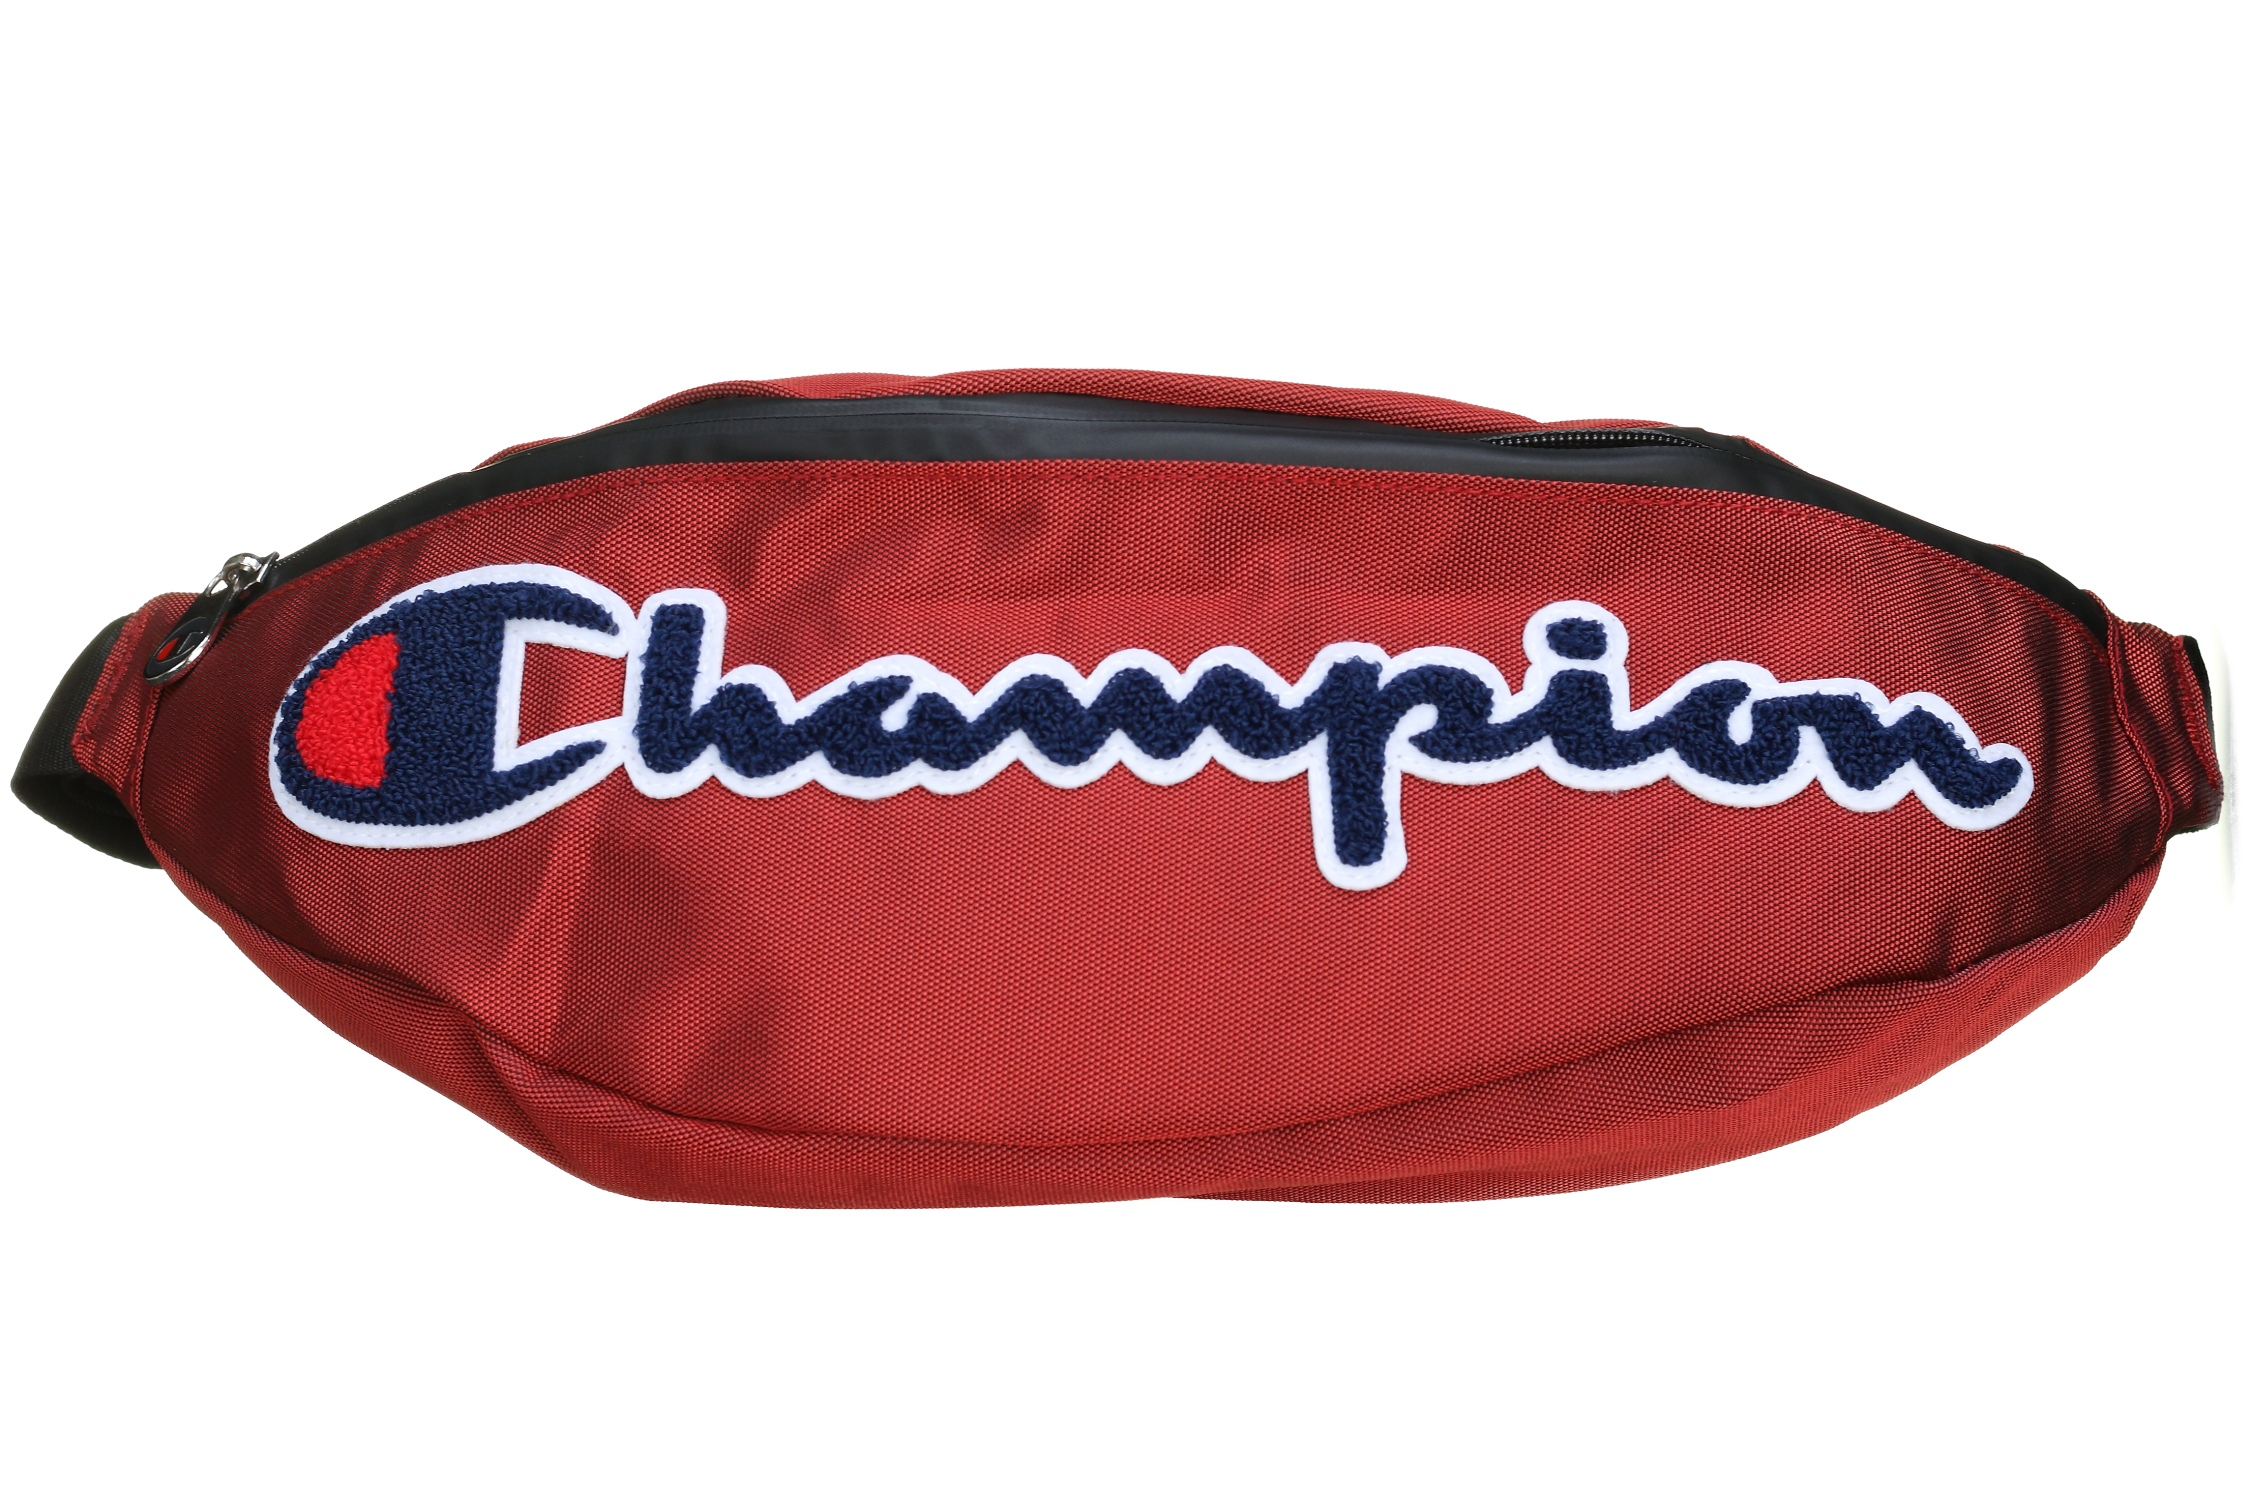 https://www.leadermode.com/183467/champion-804755-rs049-sct.jpg